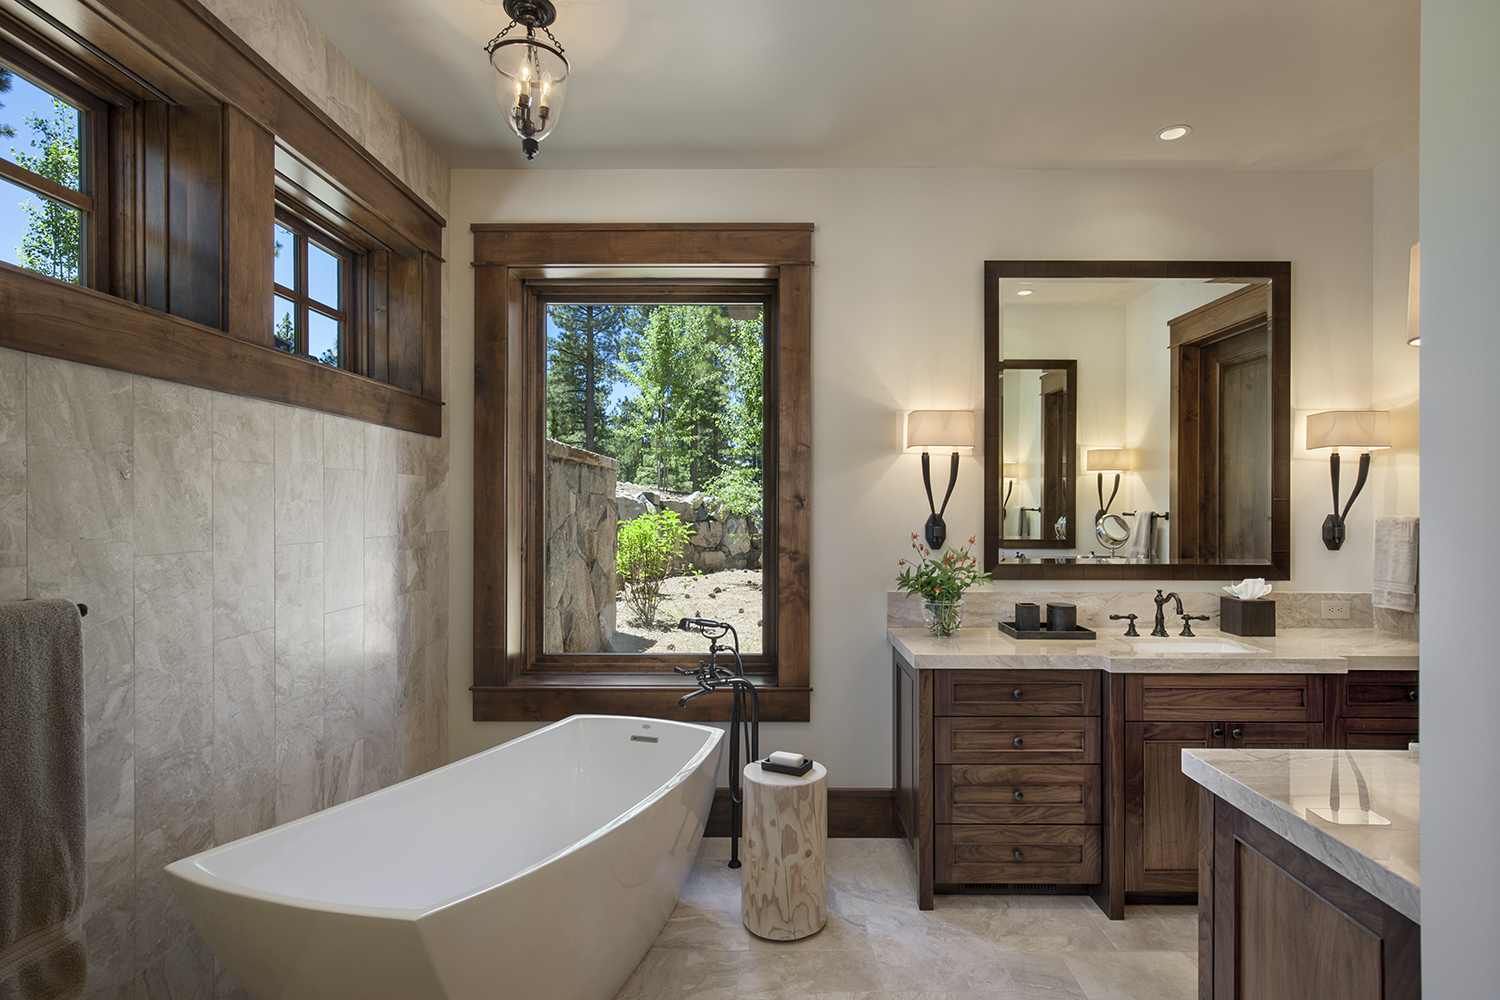 Lot 640_Master Bath_Tub_Tile_Windows_Custom Vanity.jpg